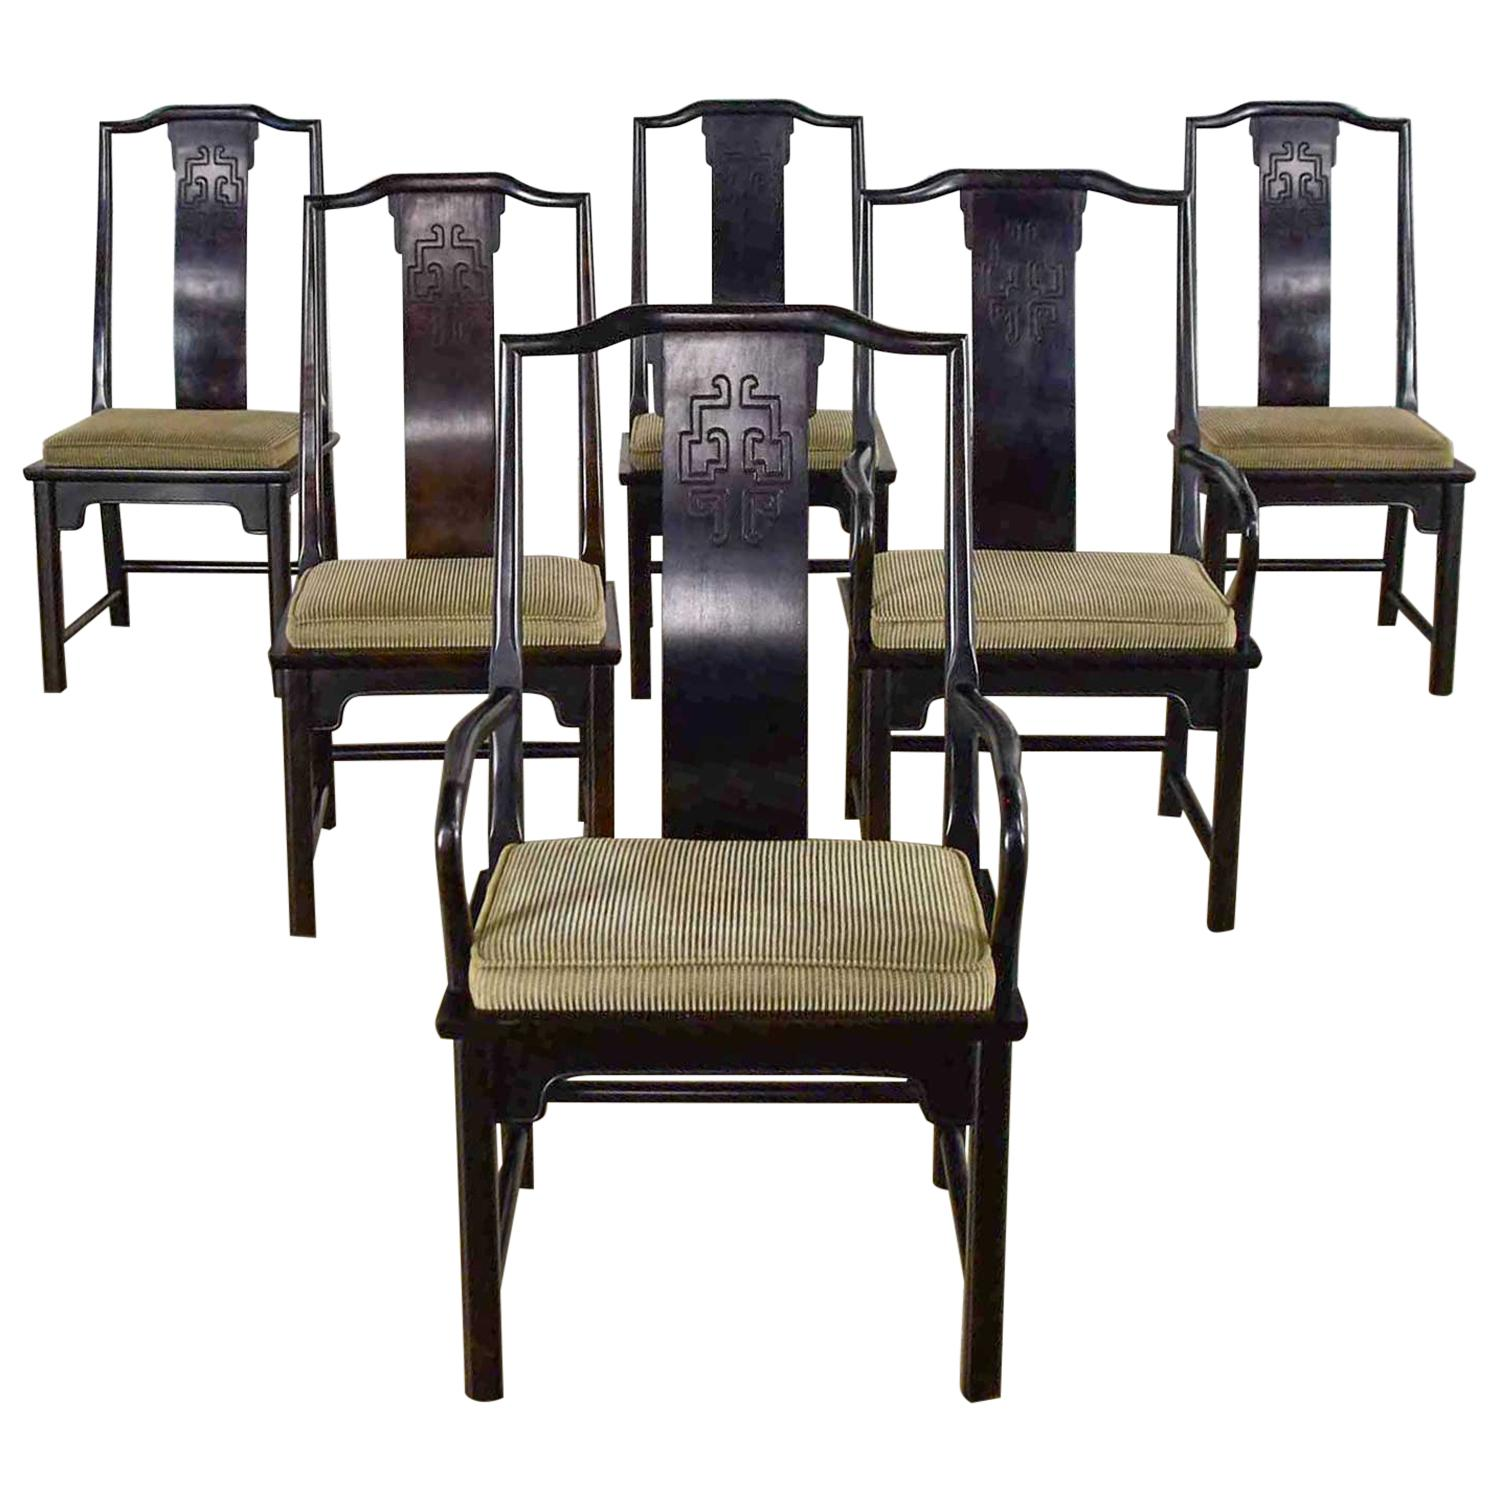 6 Chin Hua Dining Chairs in Black by Raymond K. Sobota for Century Furniture